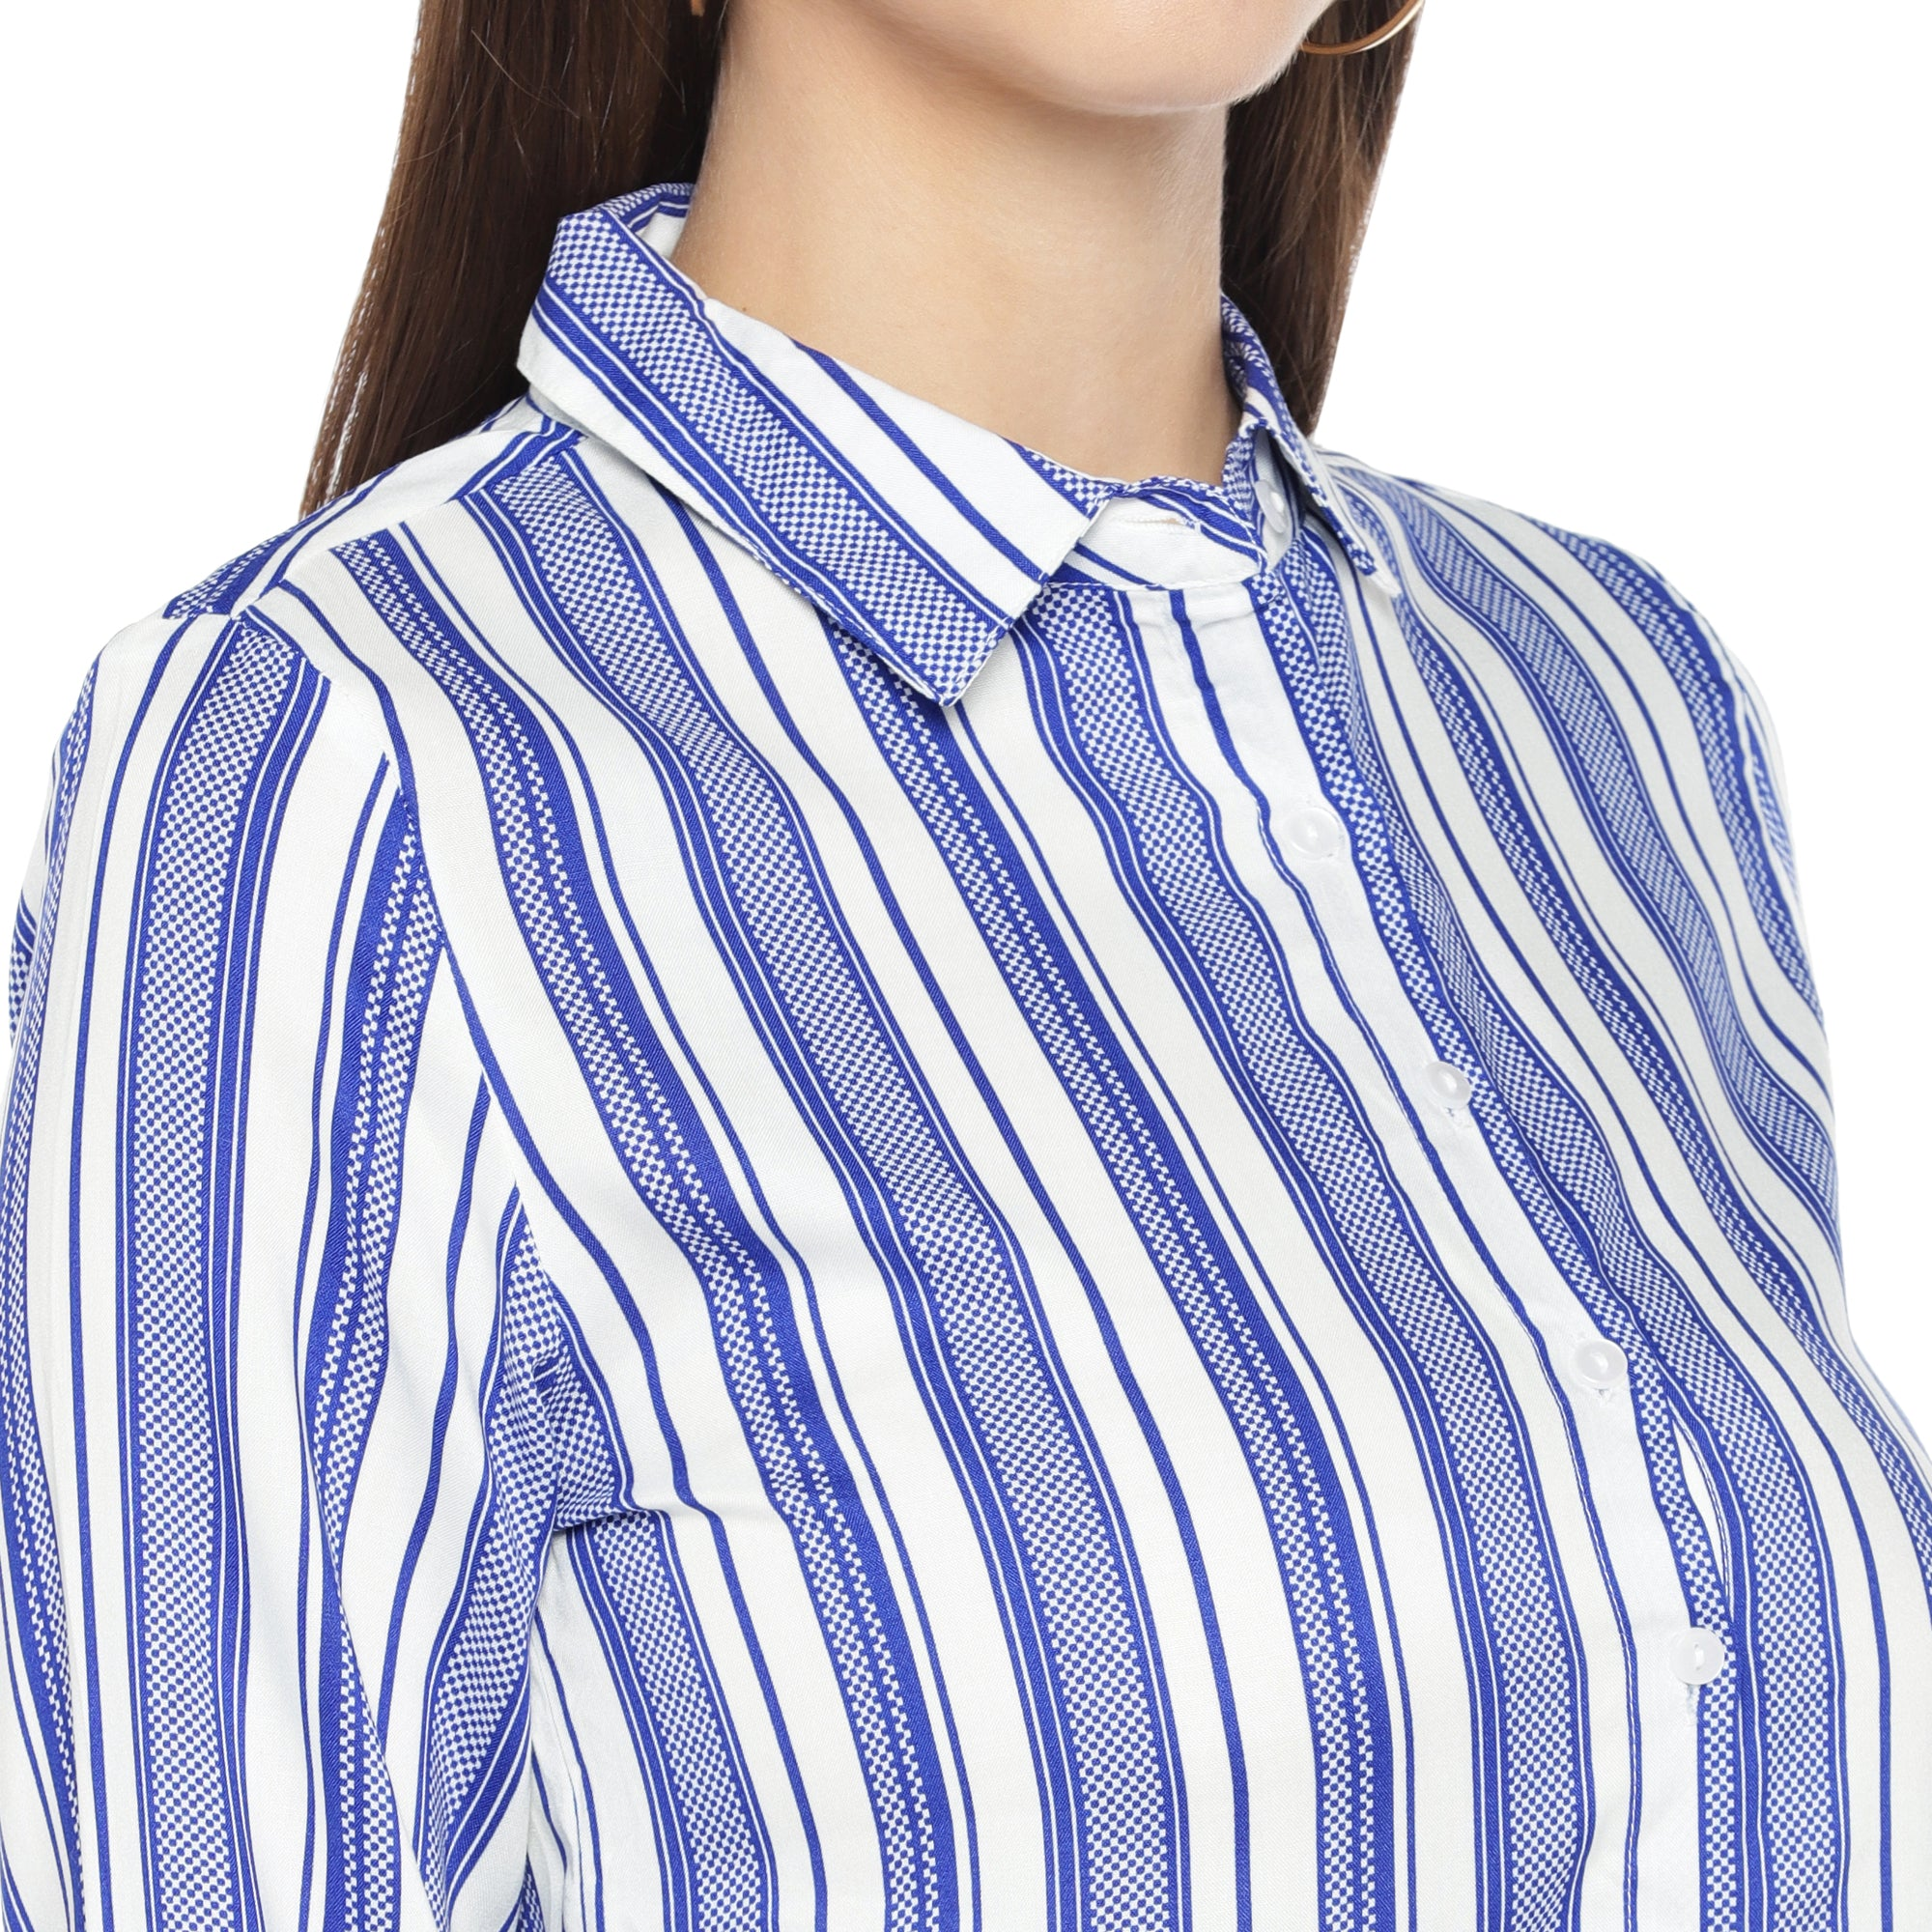 Blue Striped Shirt Style Top-5